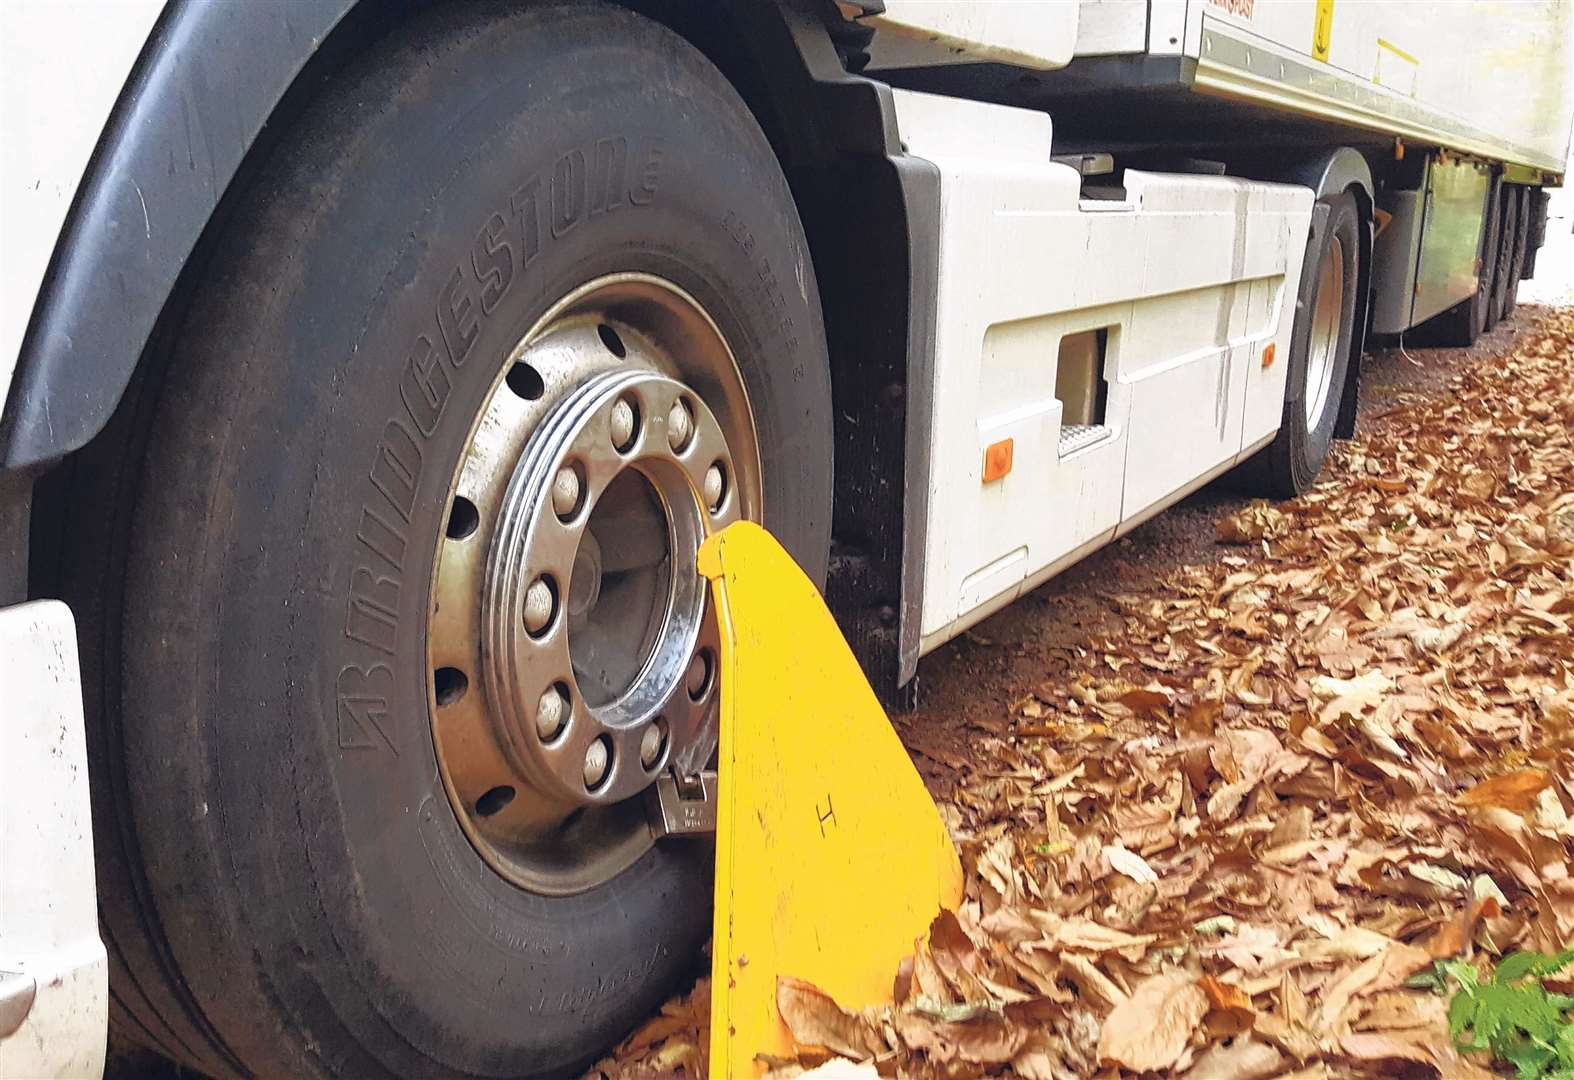 More than 1,500 lorries clamped this year